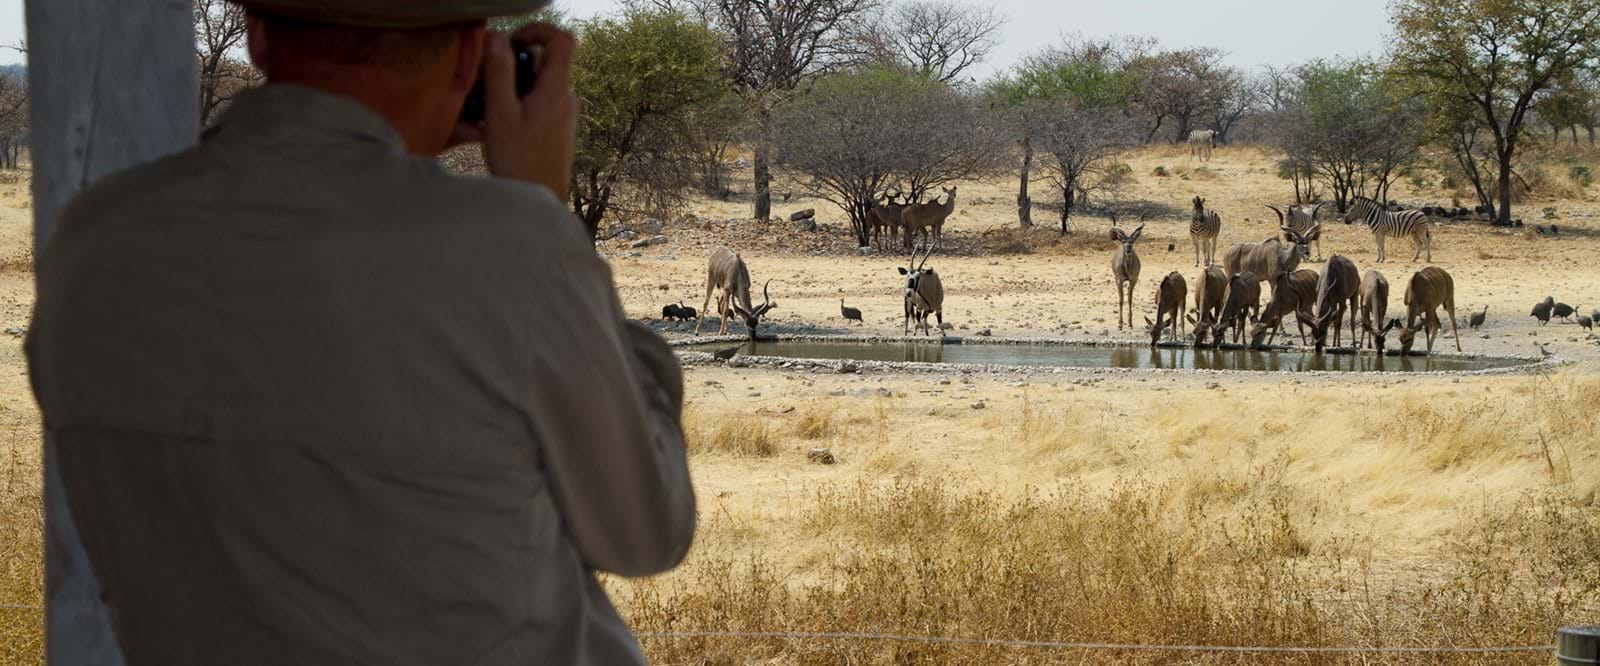 Namibia, Safari, Wildlife, Africa